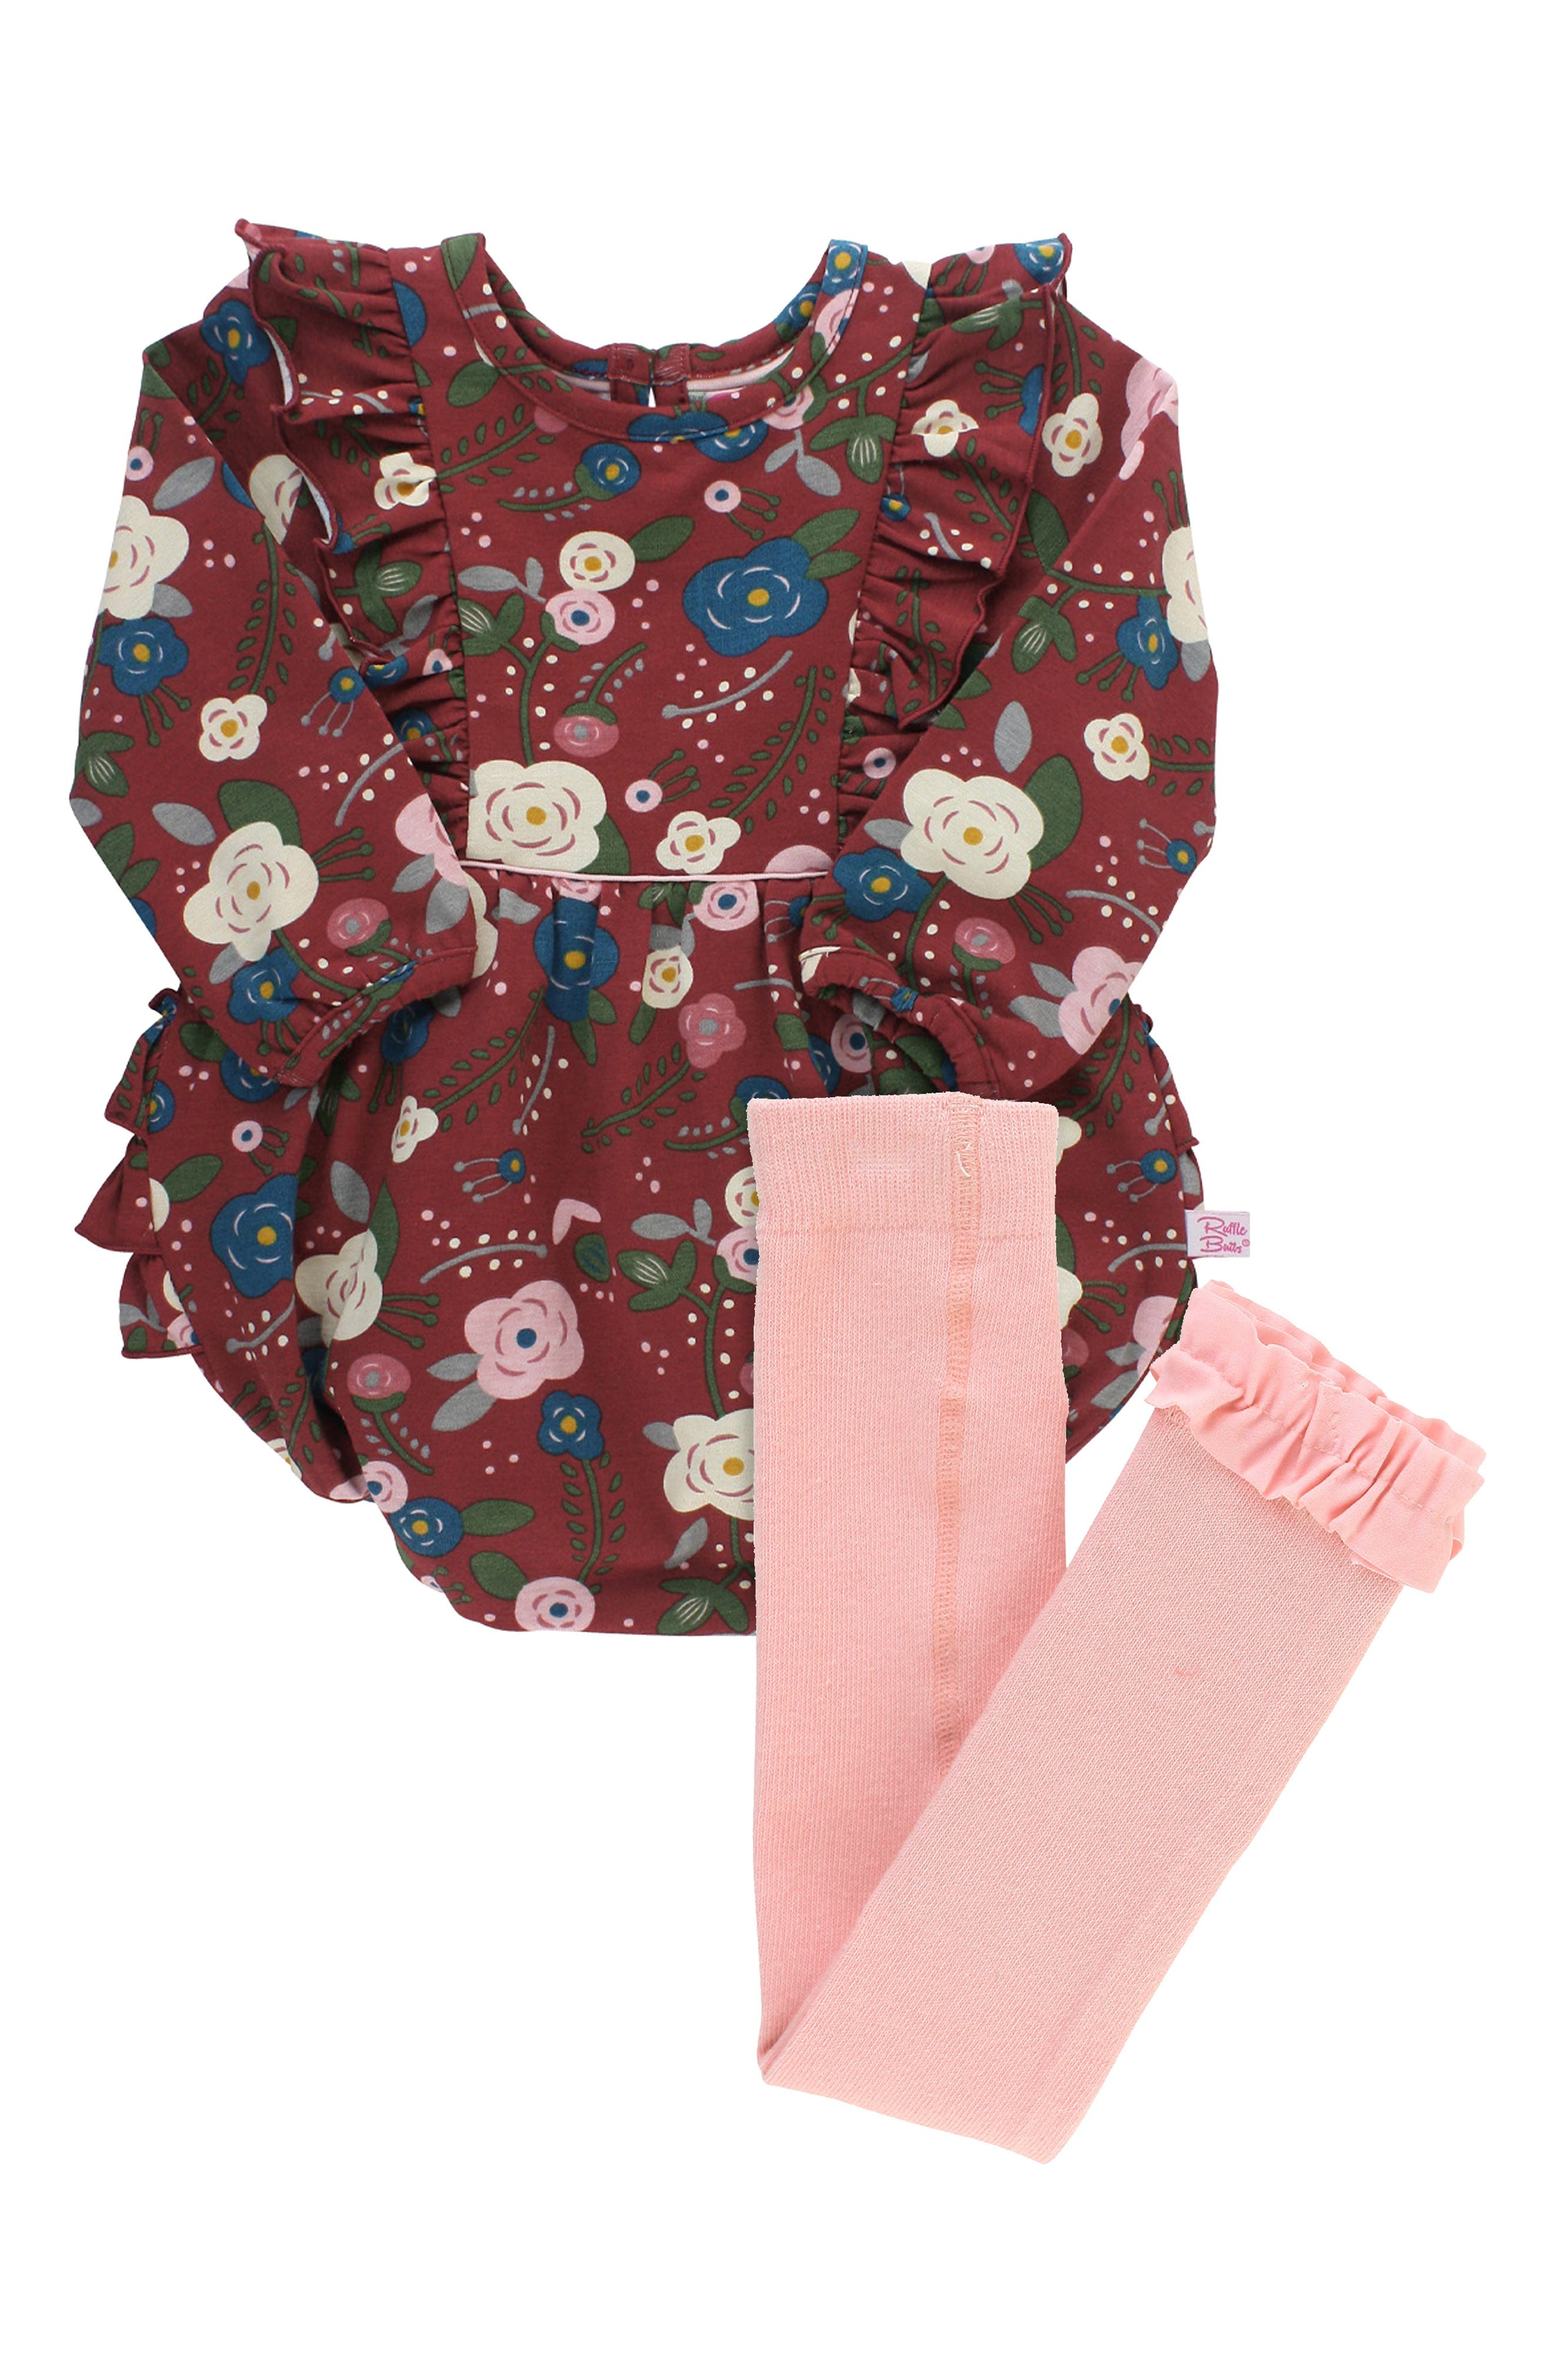 Bright flowers and pretty ruffles enliven a knit cotton romper that pairs adorably with ruffle-trimmed tights that offer plenty of stretch for comfort. Style Name: Rufflebutts Budding Beauty Bubble Romper & Tights Set (Baby). Style Number: 6095643. Available in stores.